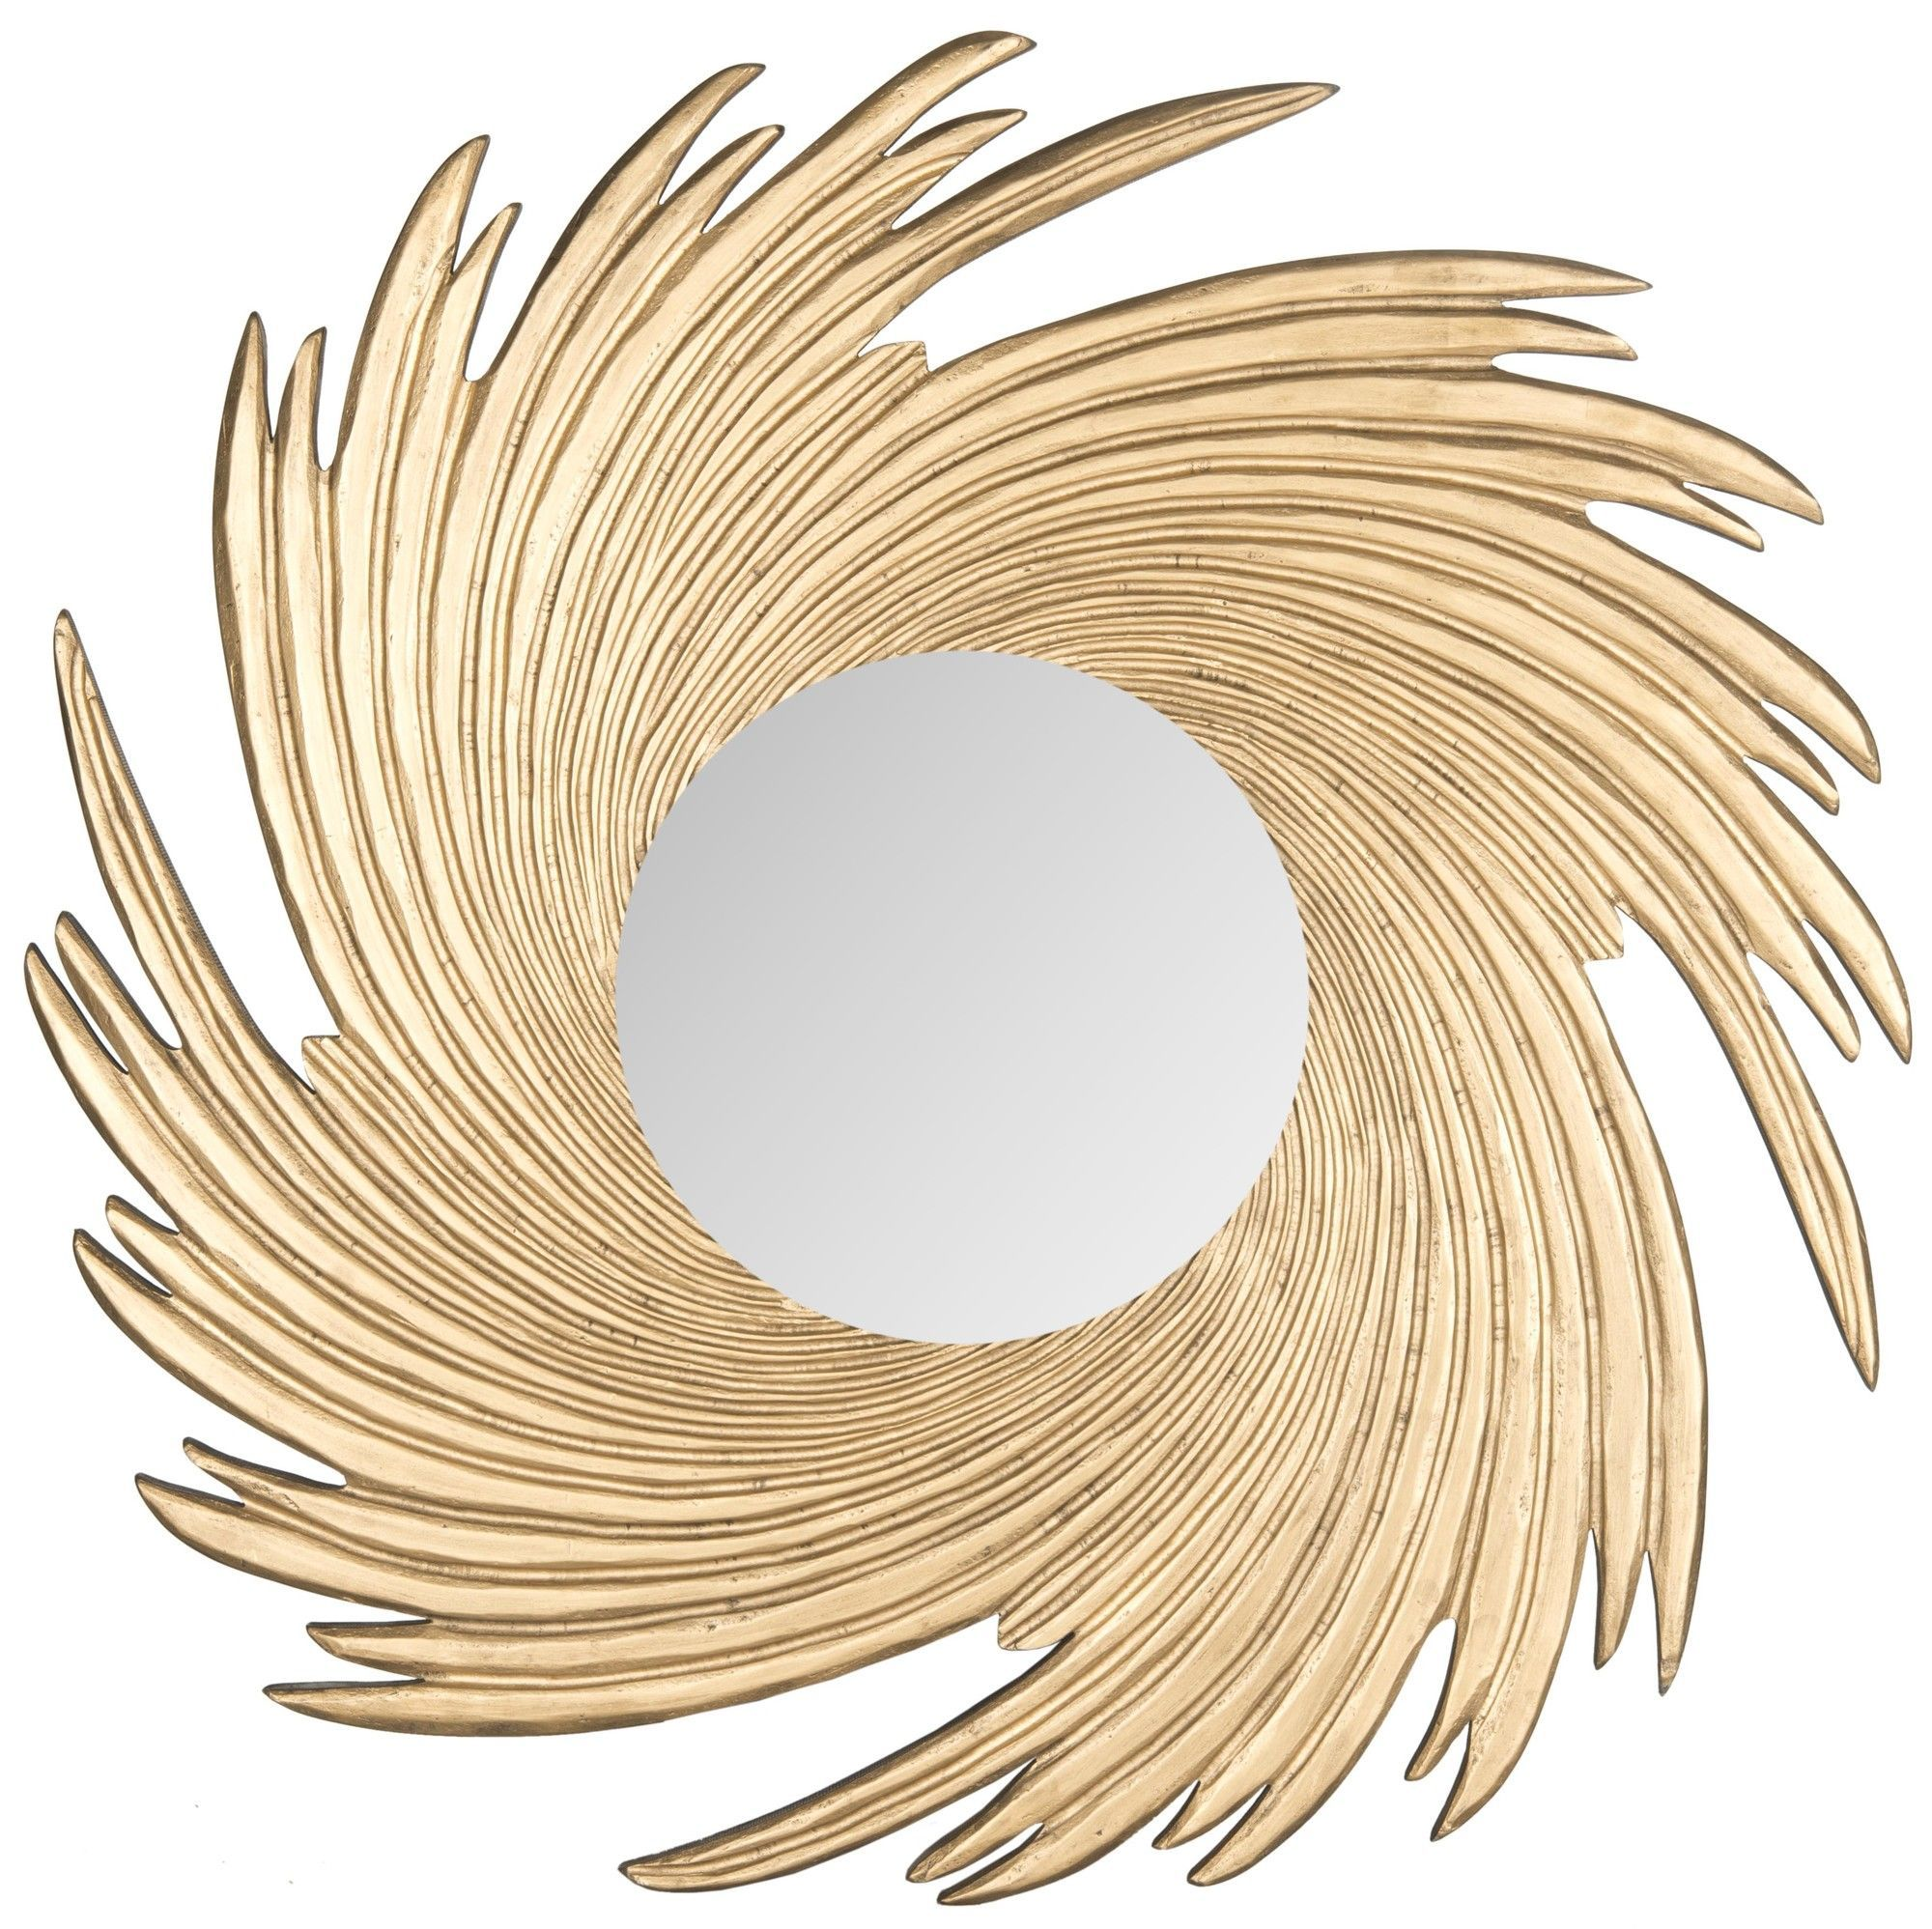 Noveau Wave Mirror | Products | Pinterest | Products